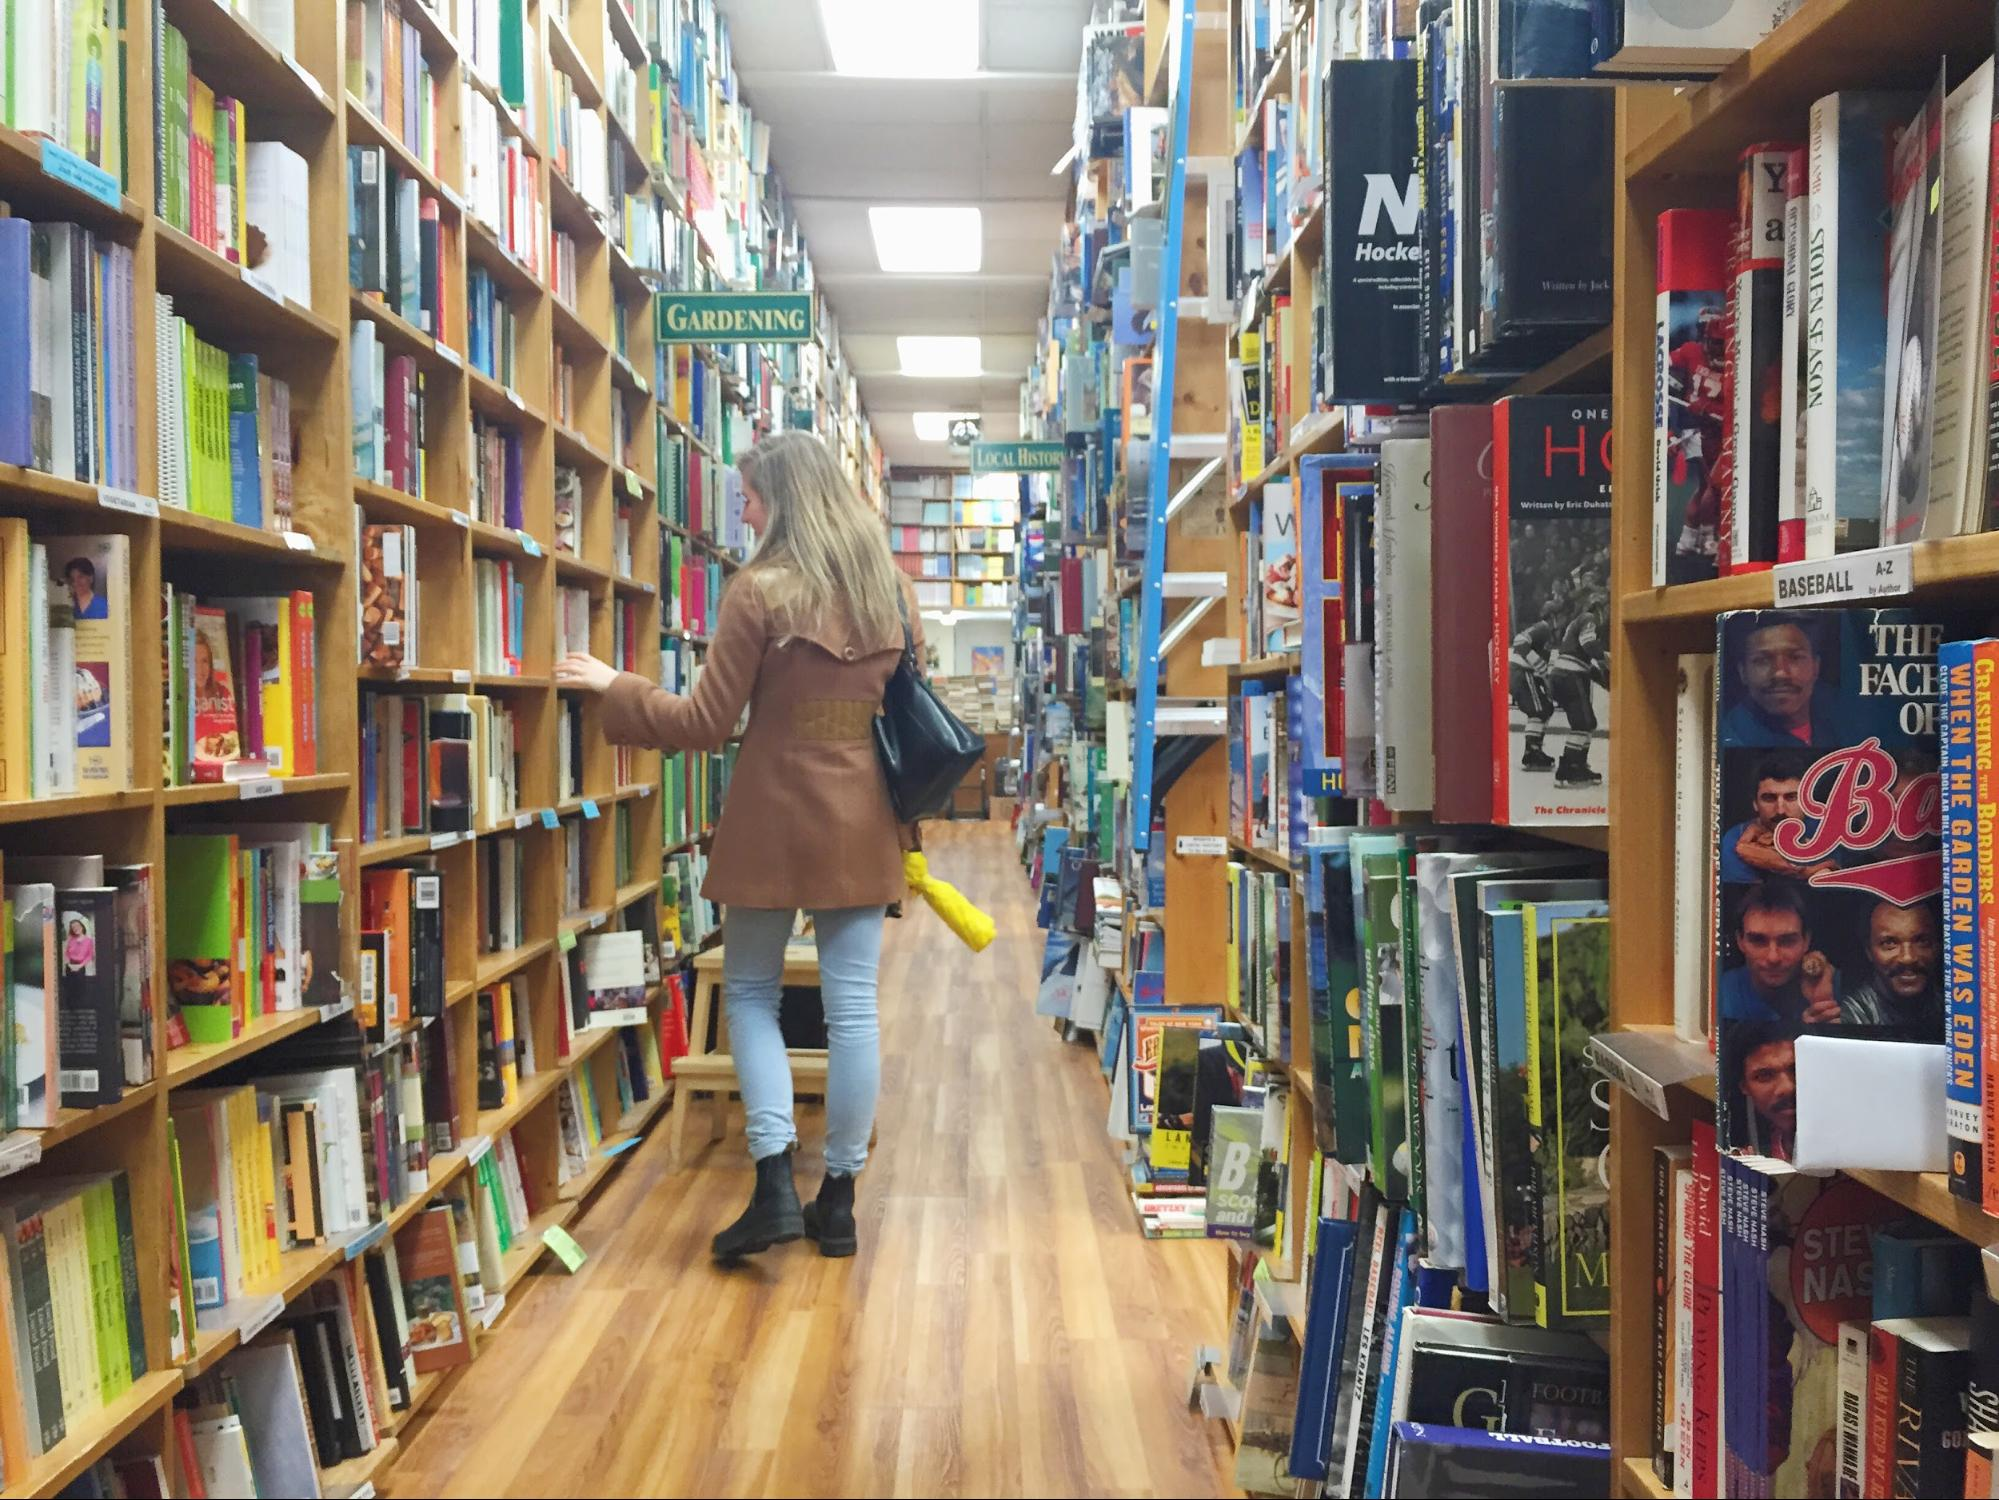 A woman explores the aisles of a used bookstore.